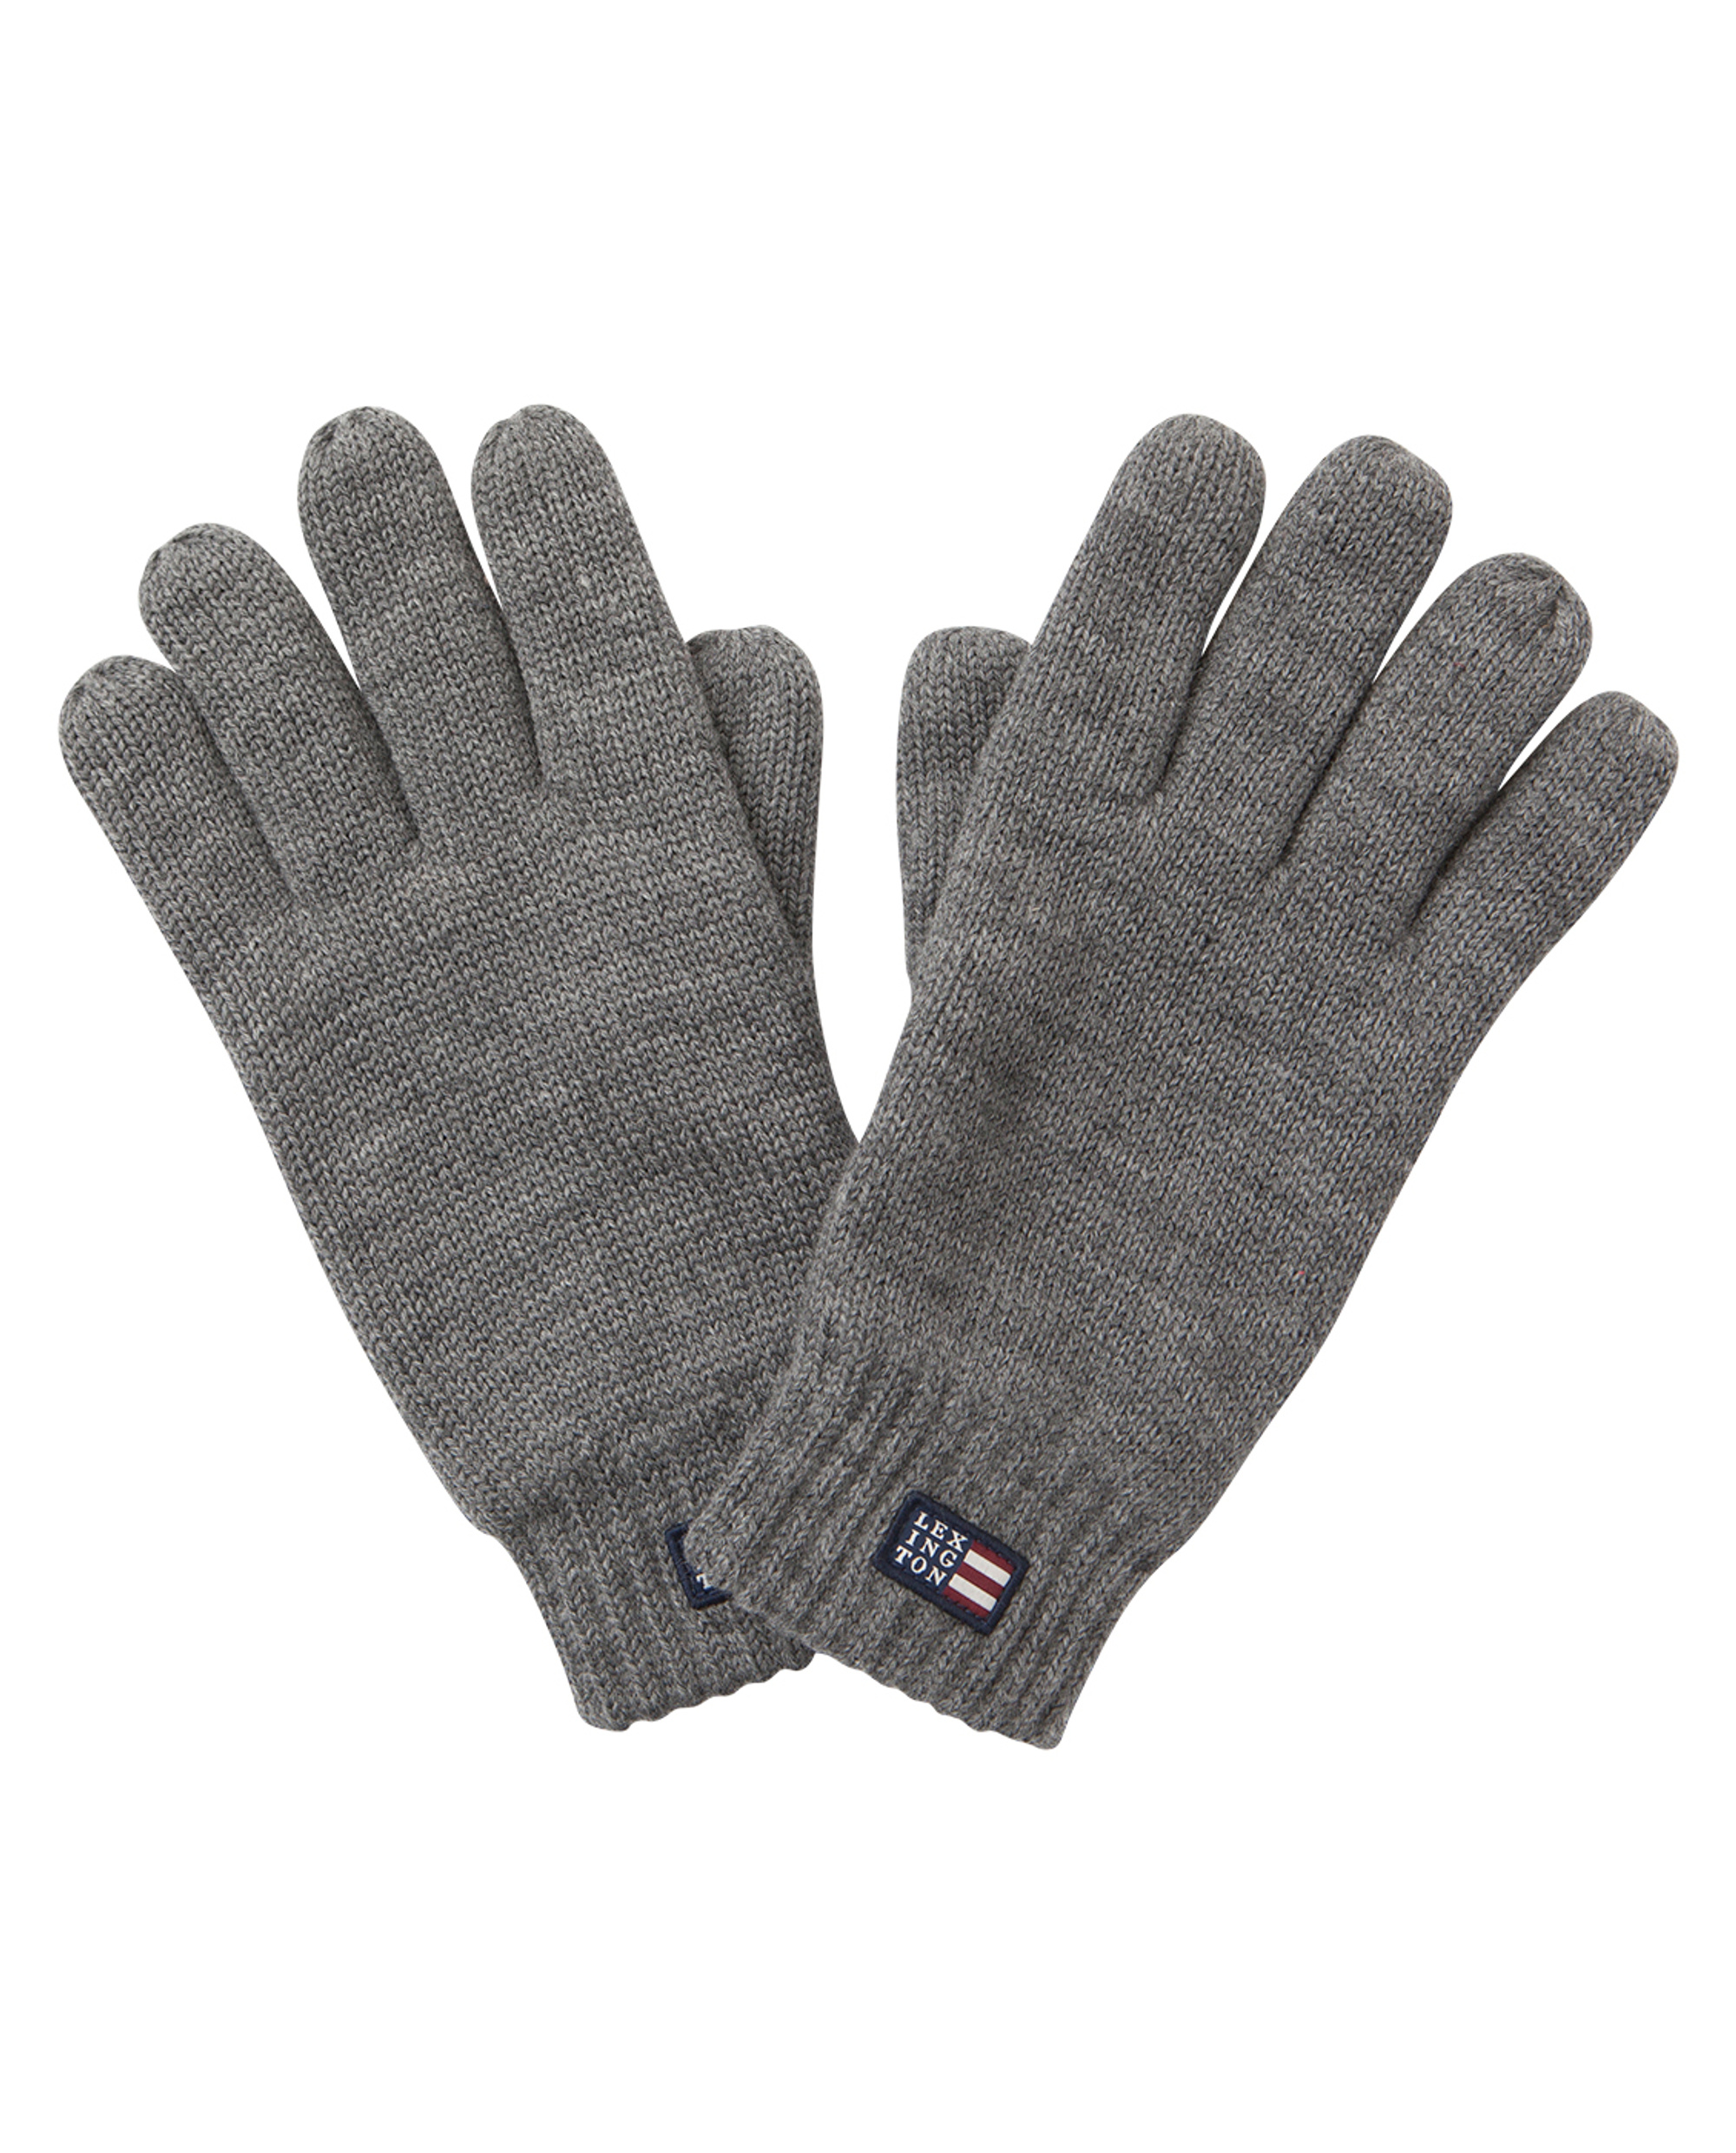 Connecticut Knitted Gloves, Gray Melange